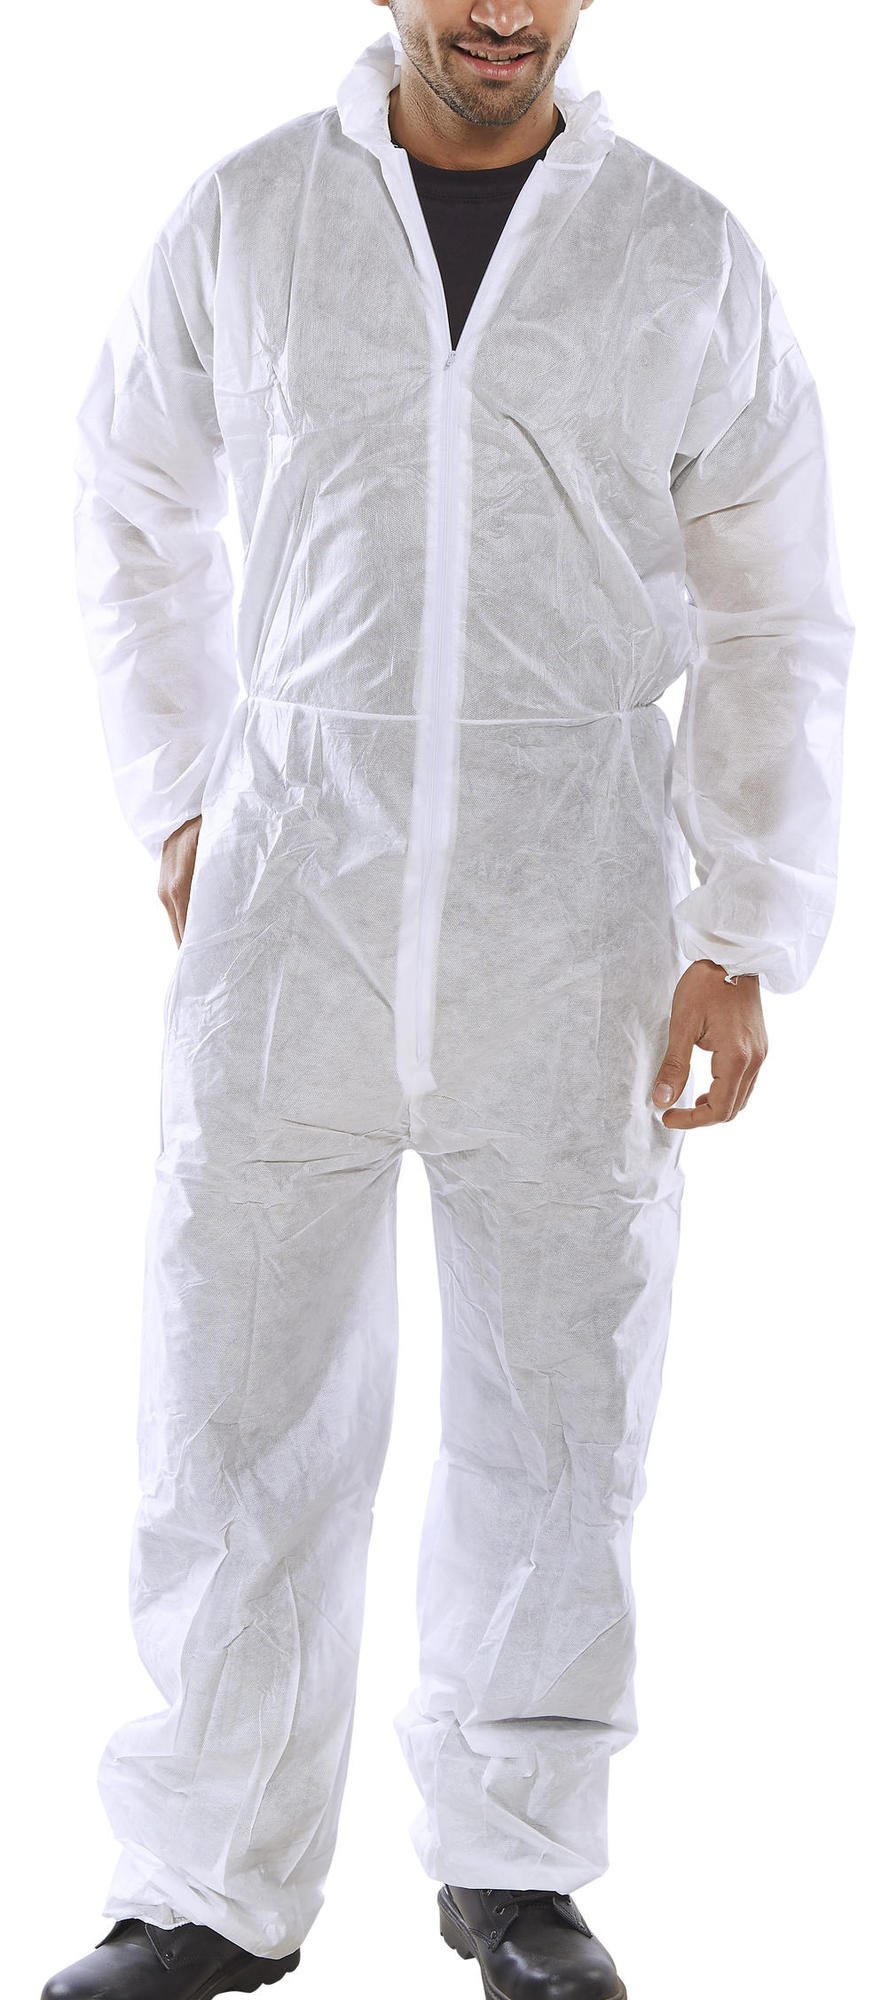 POLY PROP DISPOSABLE BOILERSUIT - PDBSH